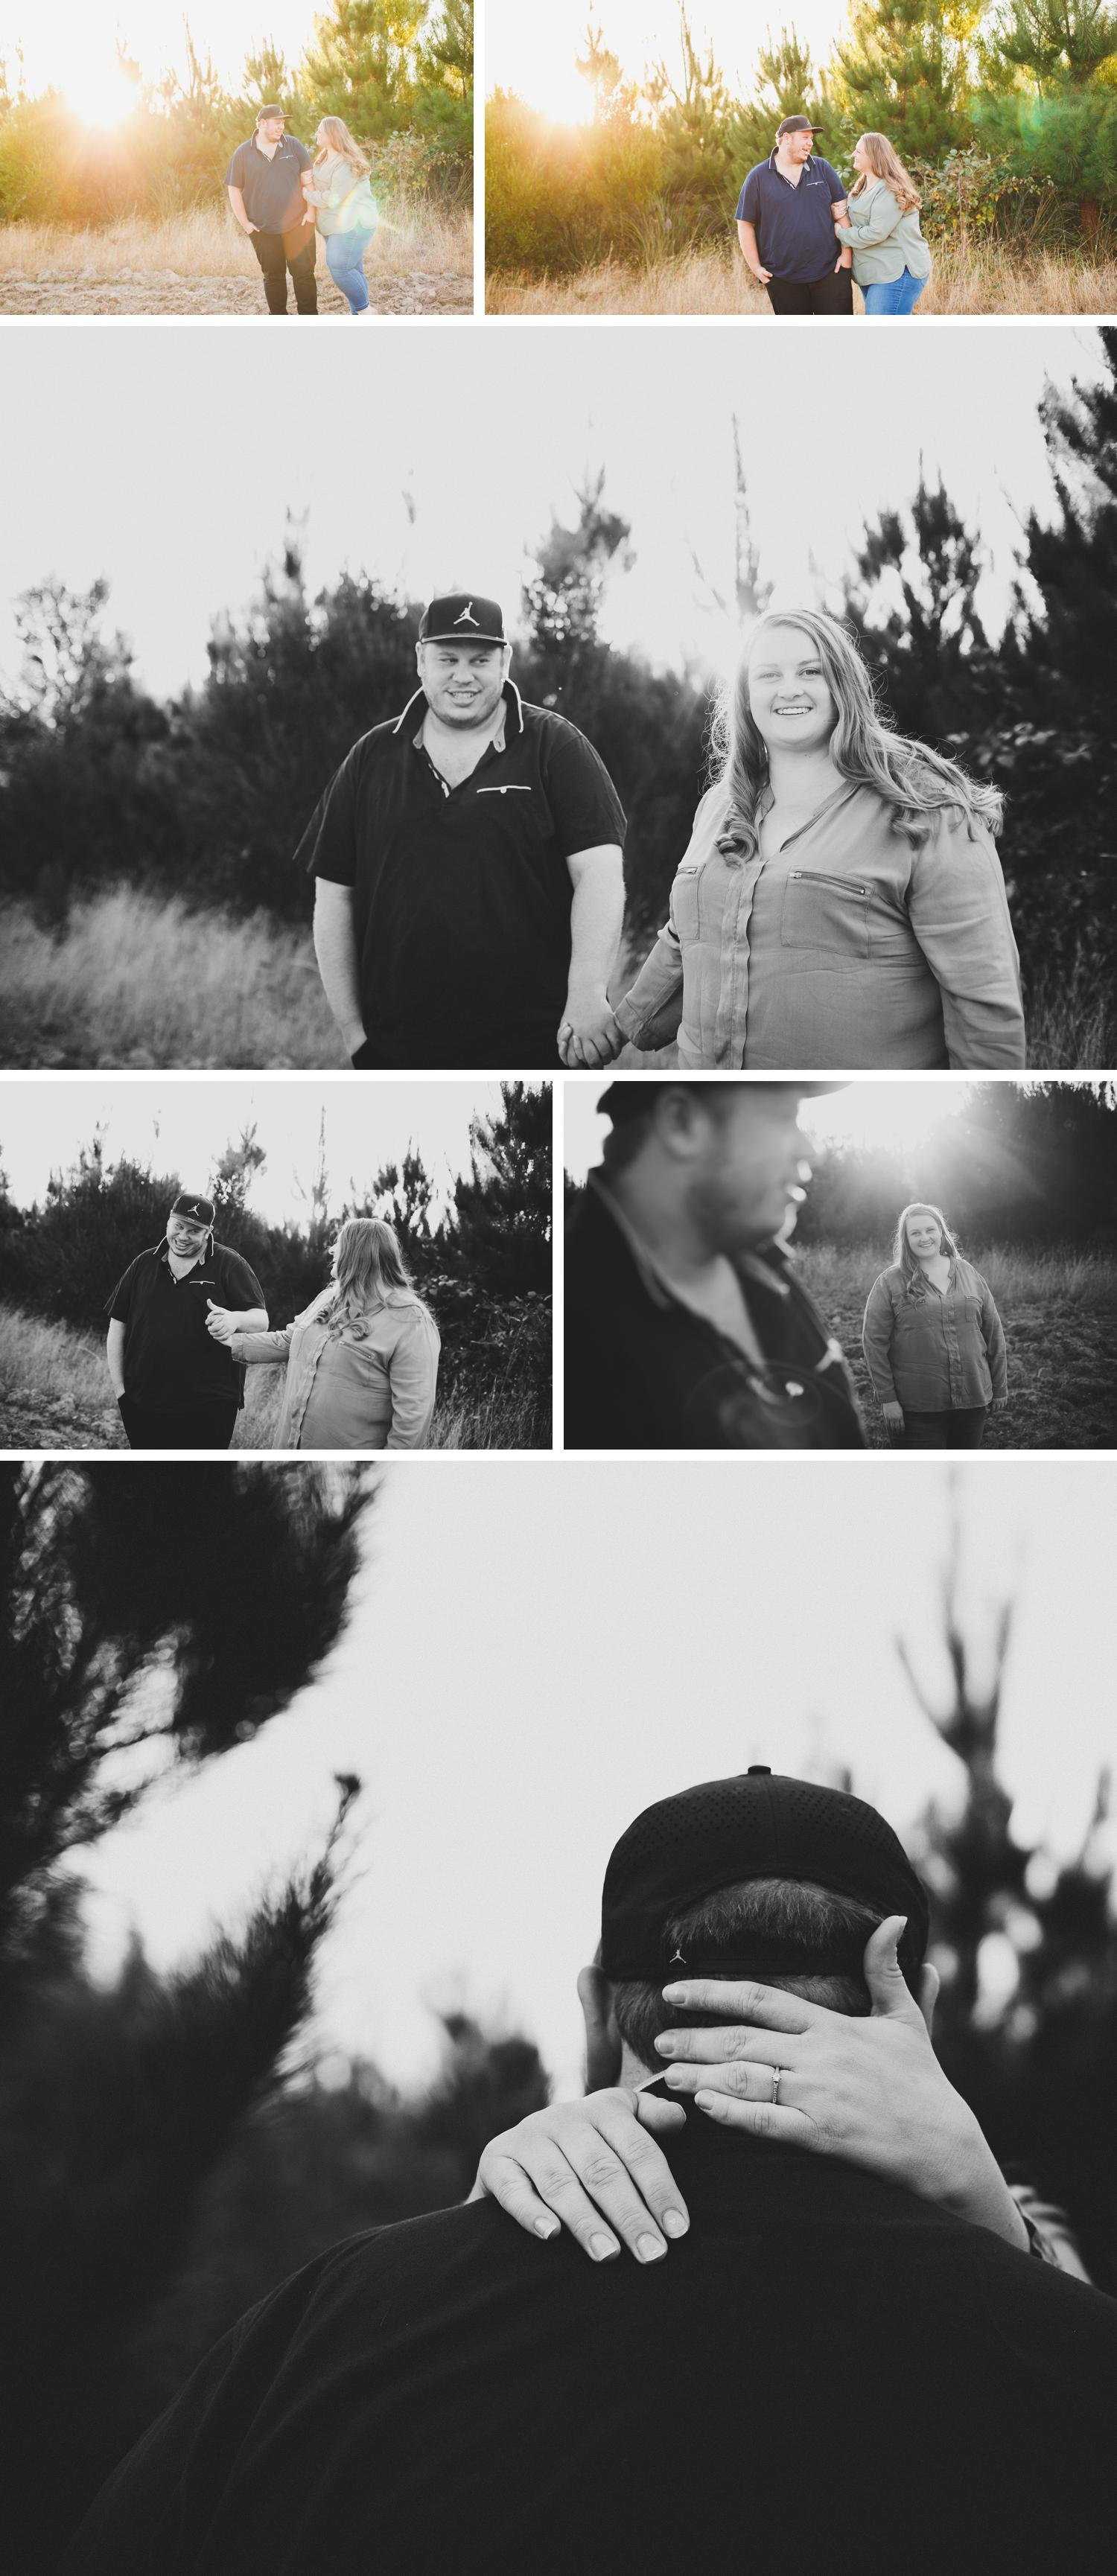 Gippsland Engagement Shoot Bush Themed, Forrest Trees Photo, Bride and Groom Embracing Photo by Danae Studios